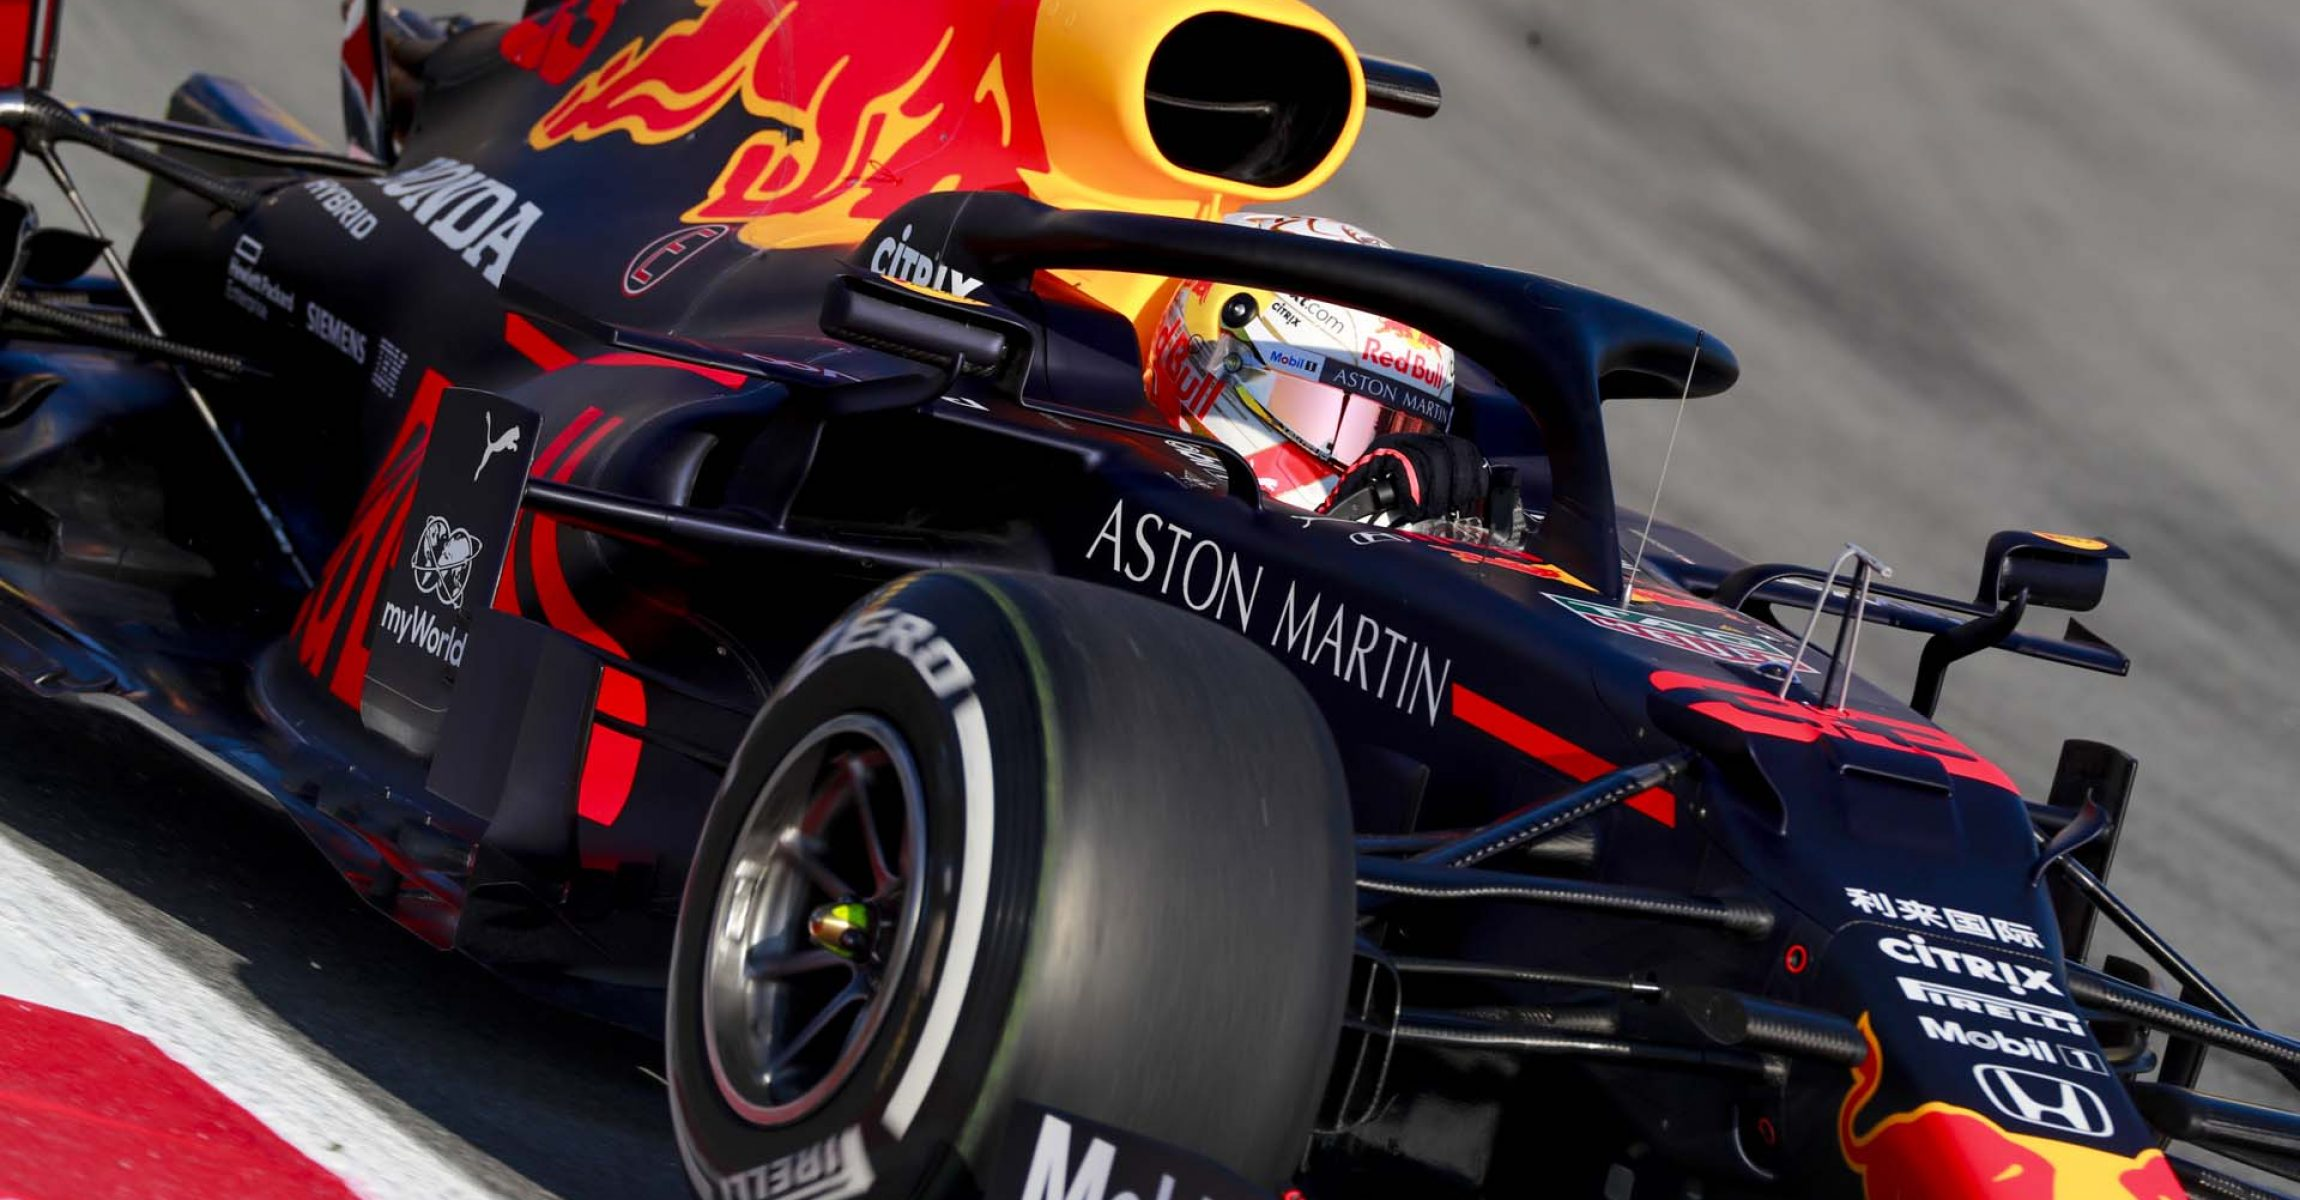 CIRCUIT DE BARCELONA-CATALUNYA, SPAIN - FEBRUARY 19: Max Verstappen, Red Bull Racing during the Barcelona February testing I at Circuit de Barcelona-Catalunya on February 19, 2020 in Circuit de Barcelona-Catalunya, Spain. (Photo by Steven Tee / LAT Images)